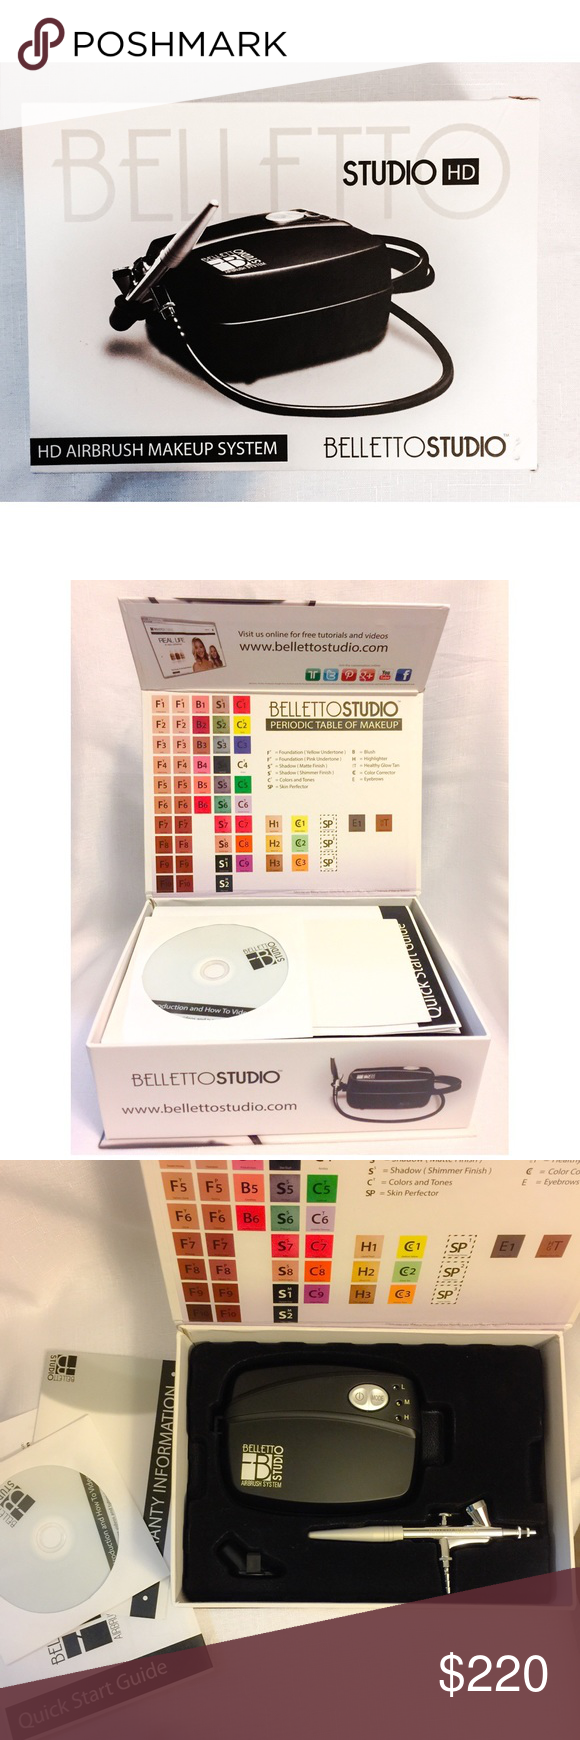 New Belletto Studio HD Airbrush Makeup System!! Airbrush